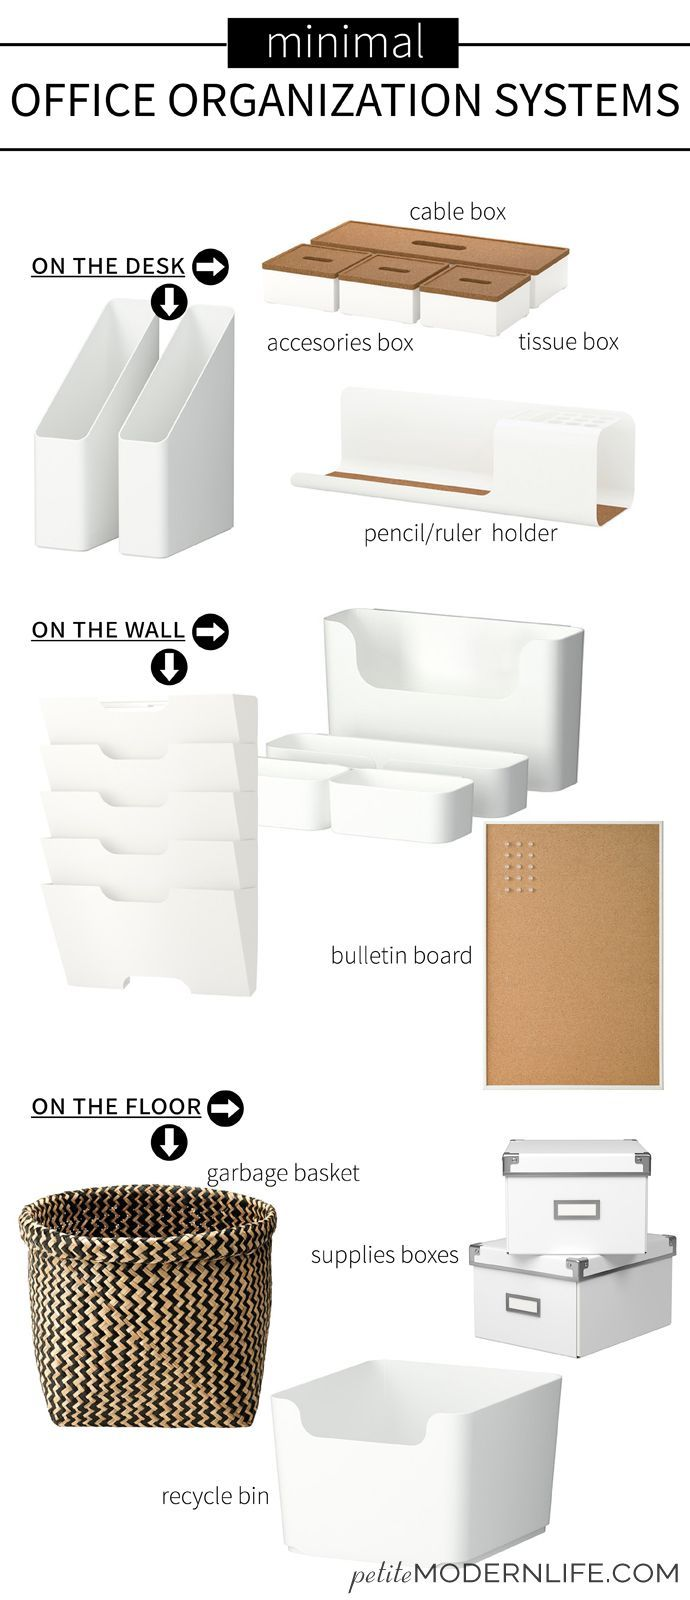 Your home improvements refference ikea closet organizer design - Your Home Improvements Refference Ikea Closet Storage Organizer Minimal Office Organization Systems Download